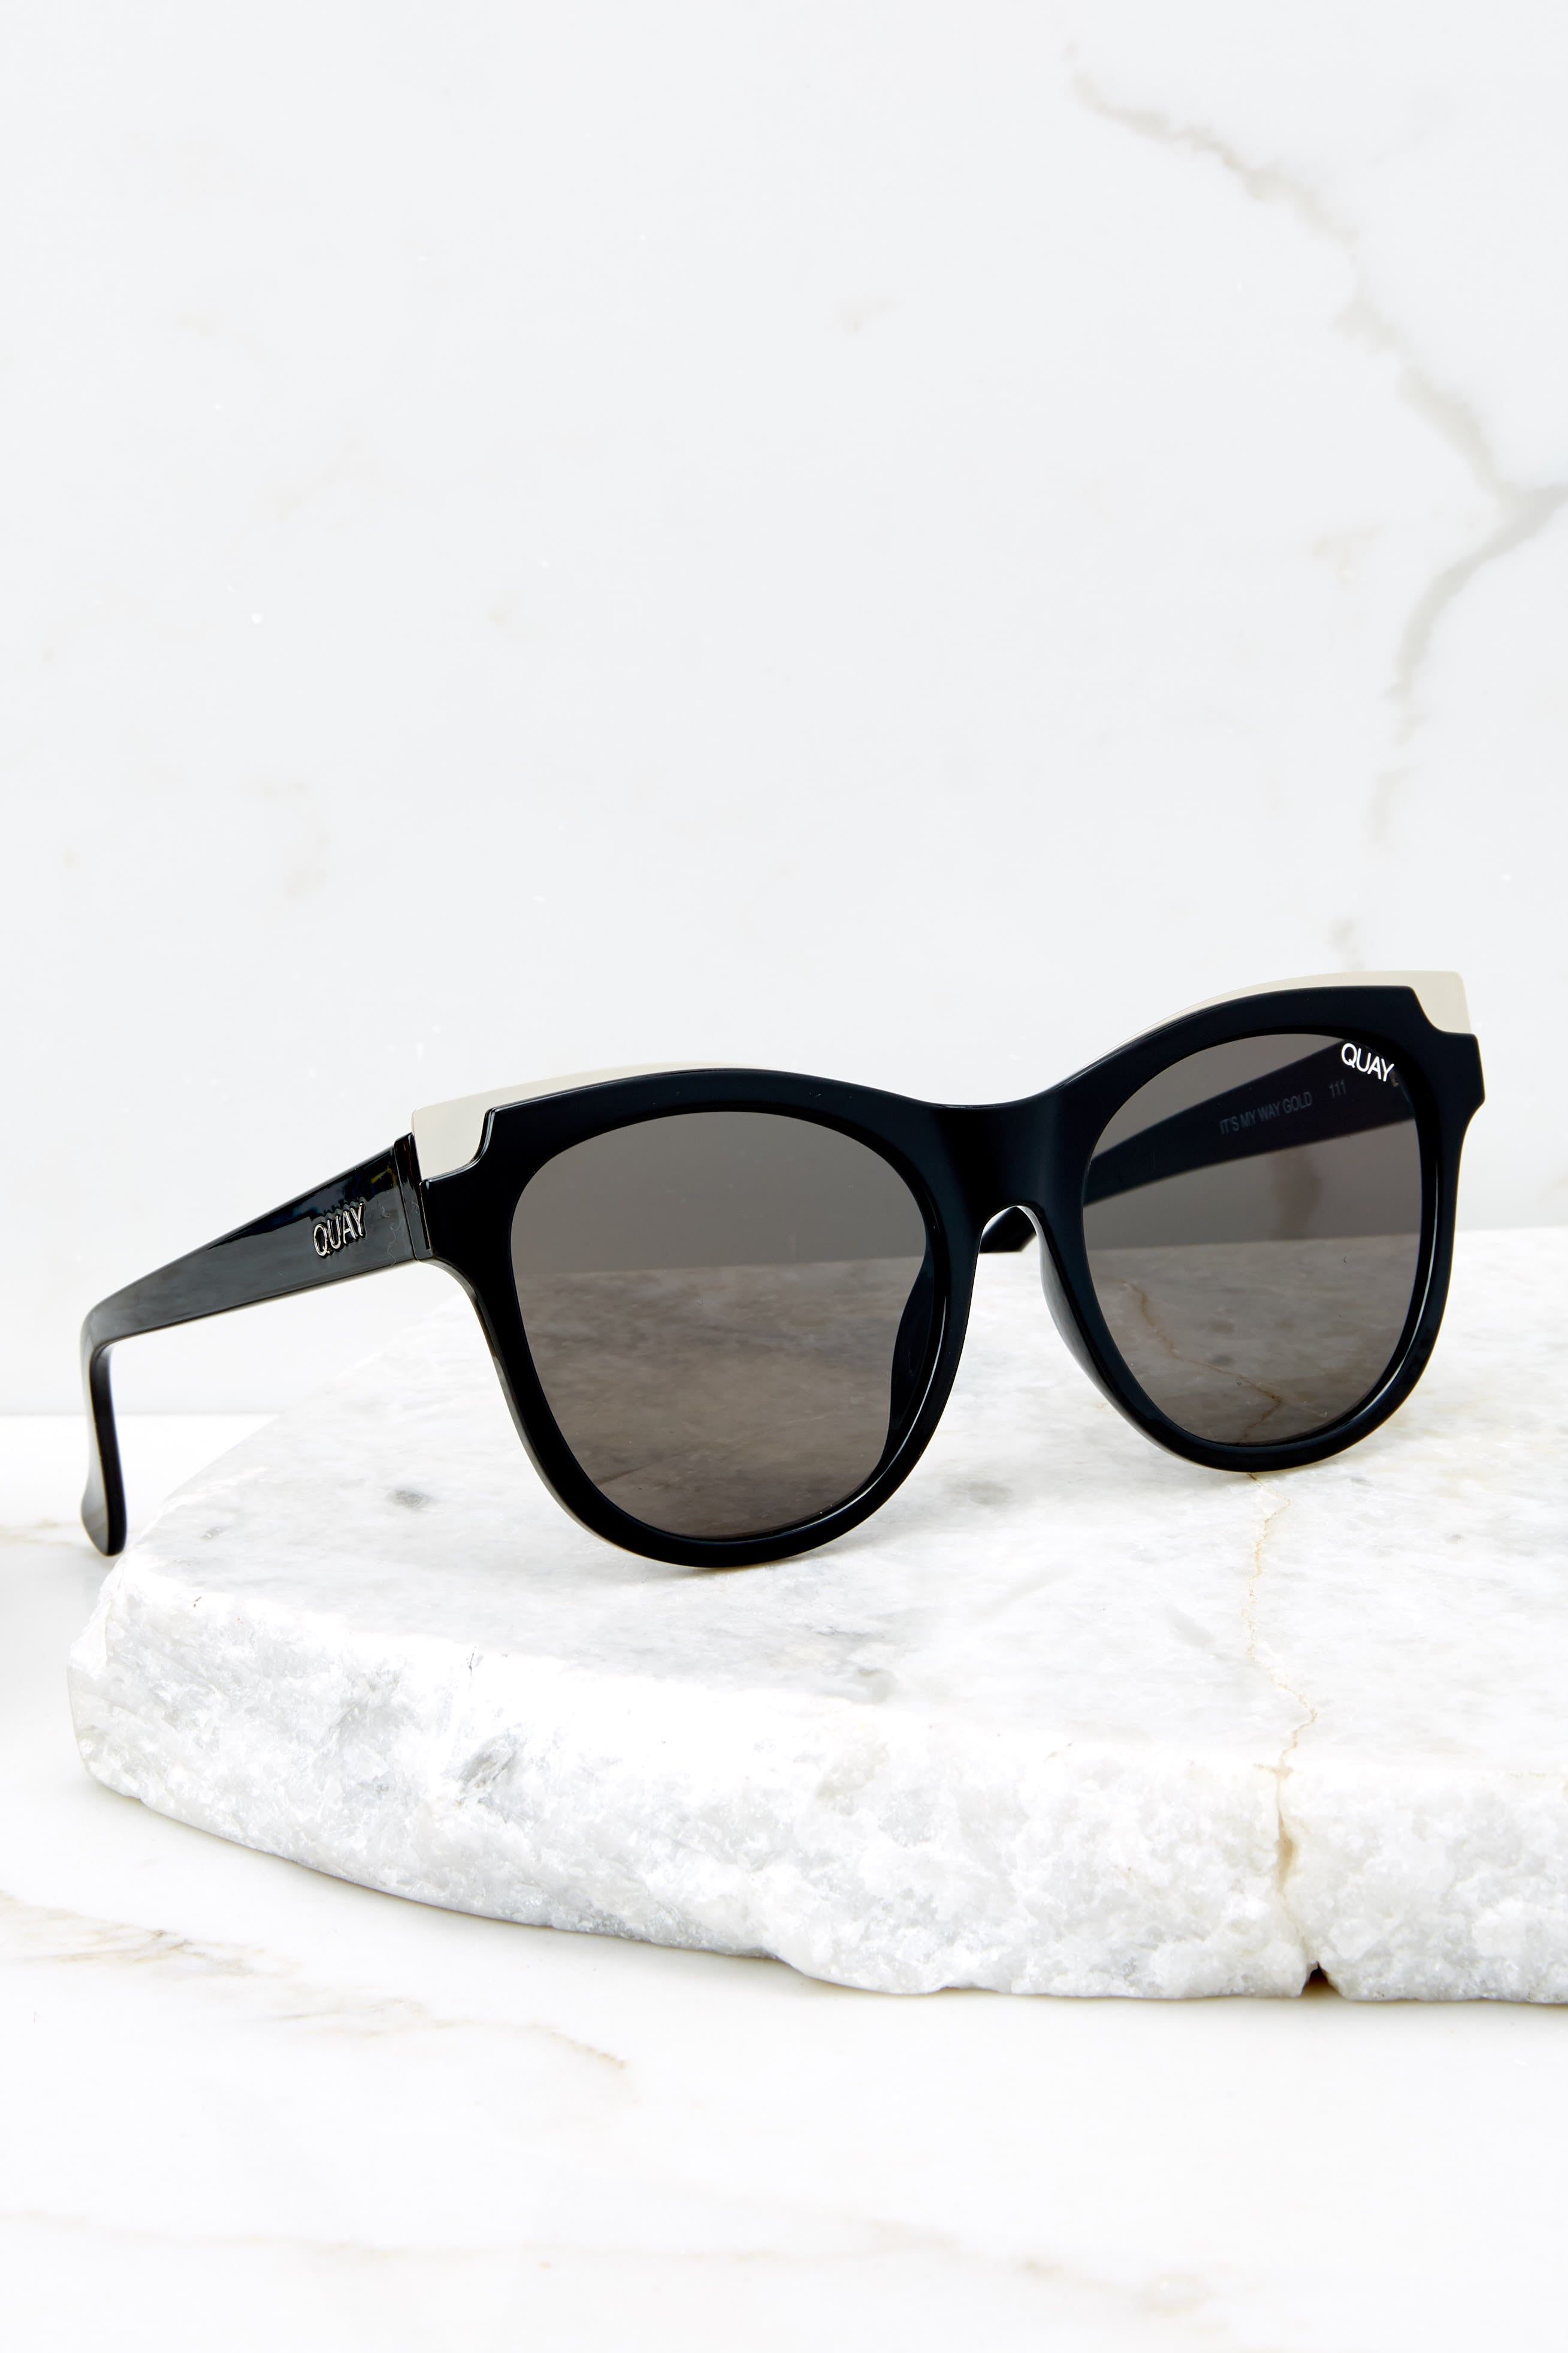 2 It's My Way Black Gold Smoke Sunglasses at reddress.com